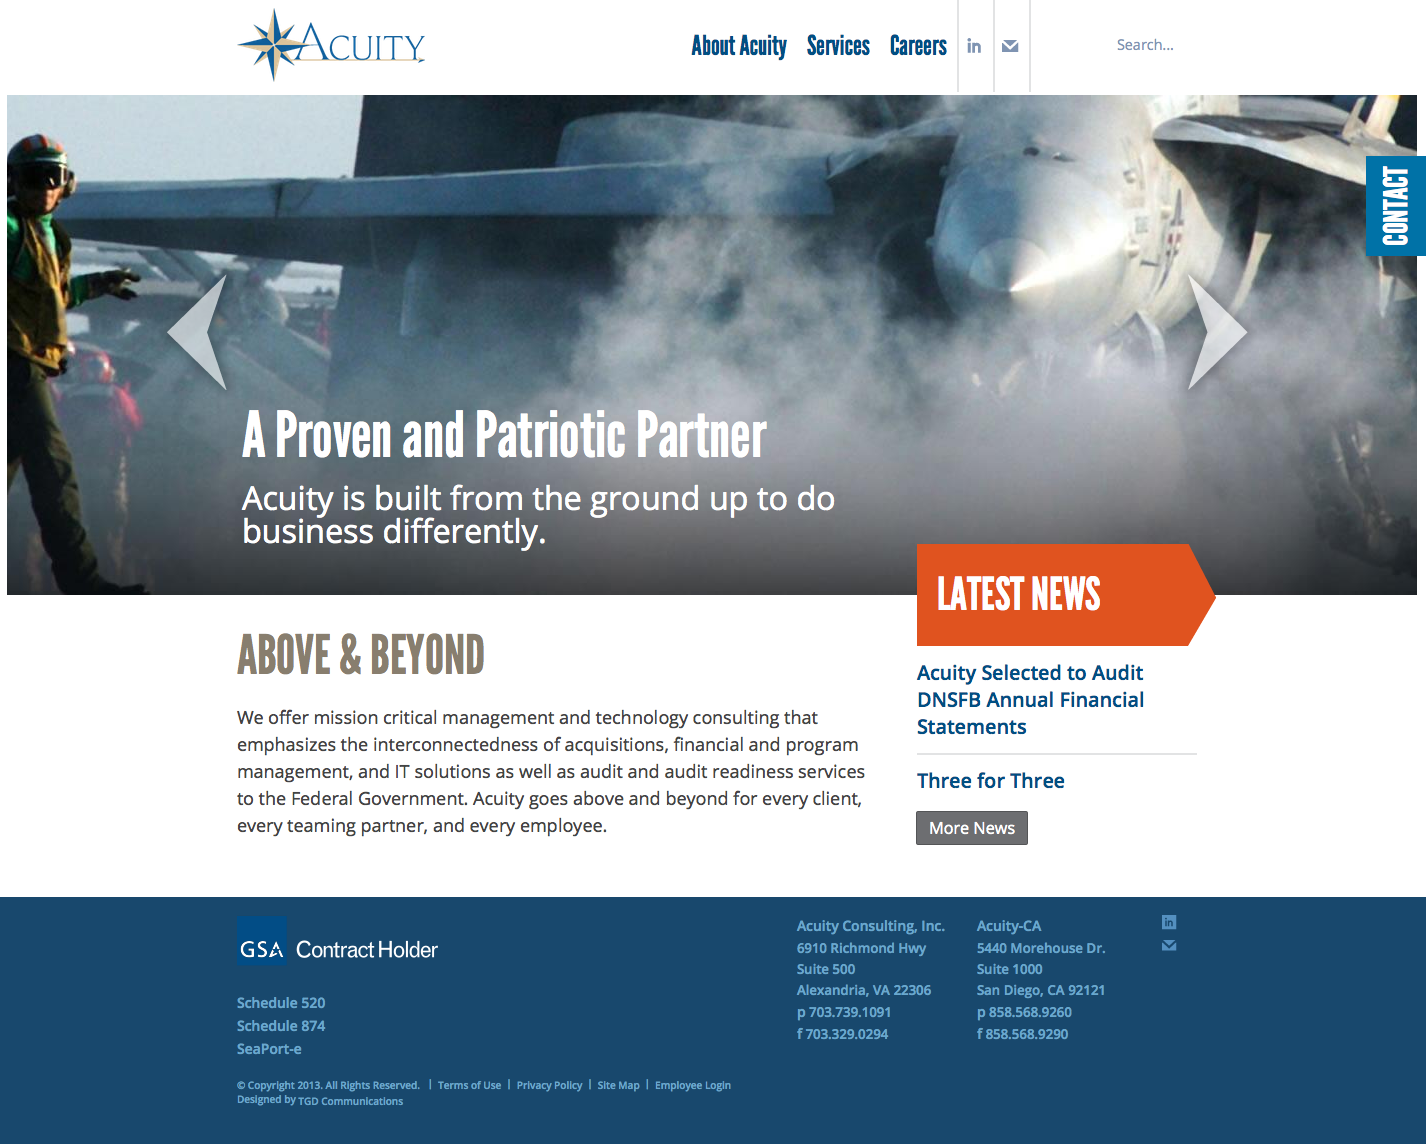 Acuity Consulting website